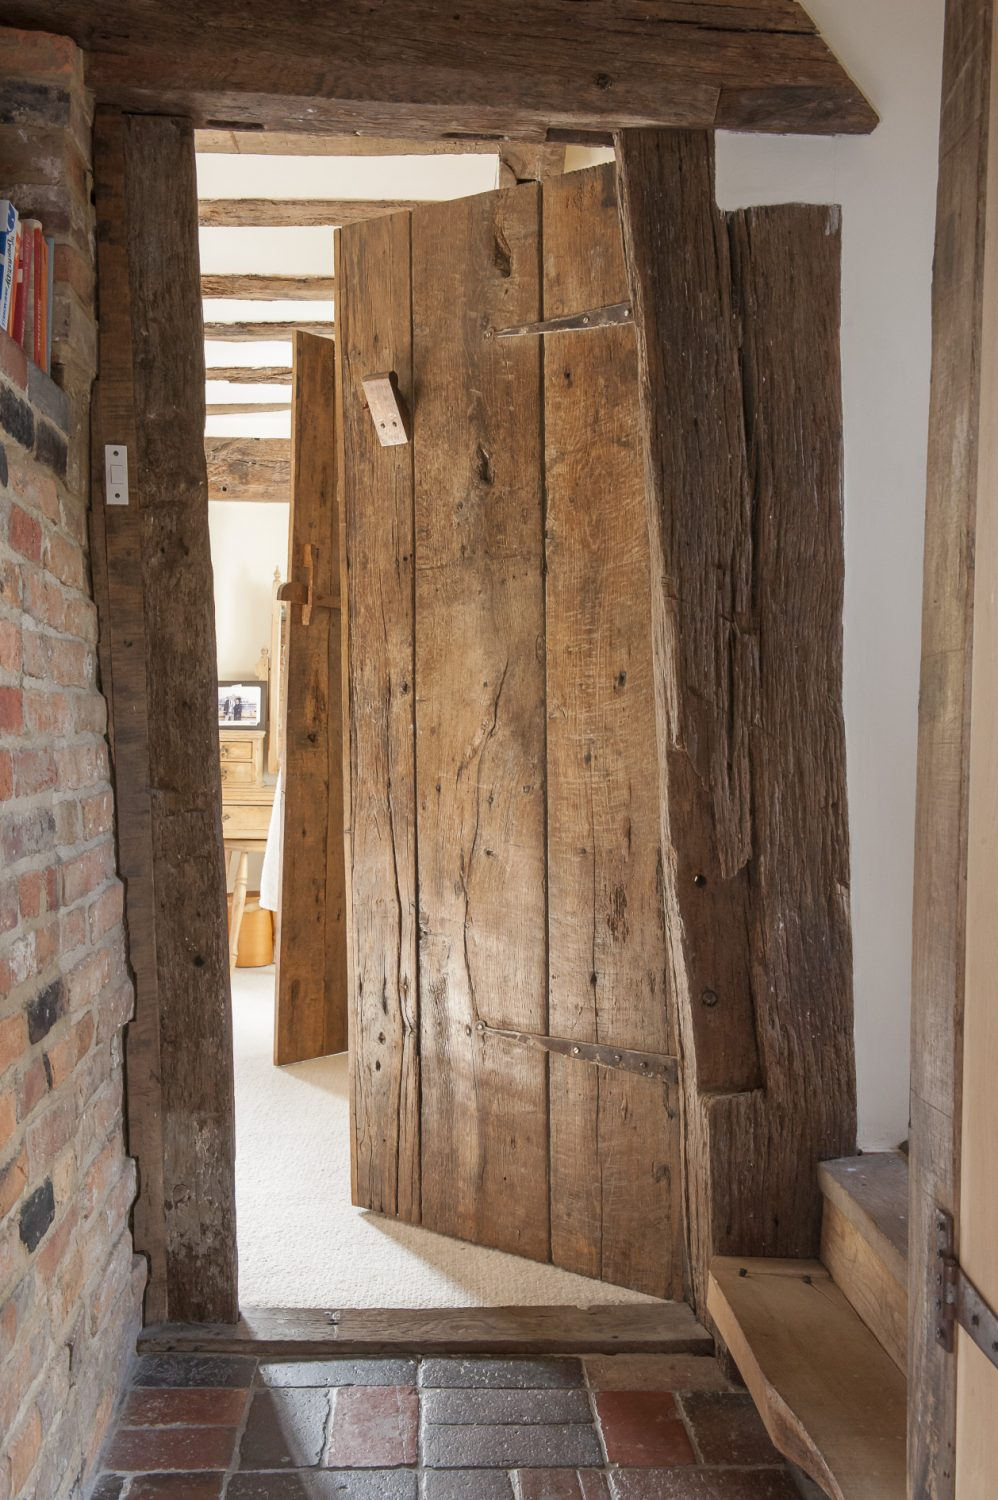 Paul points out the impressive oak doors made from floorboards from the original cottages and which appear throughout the house